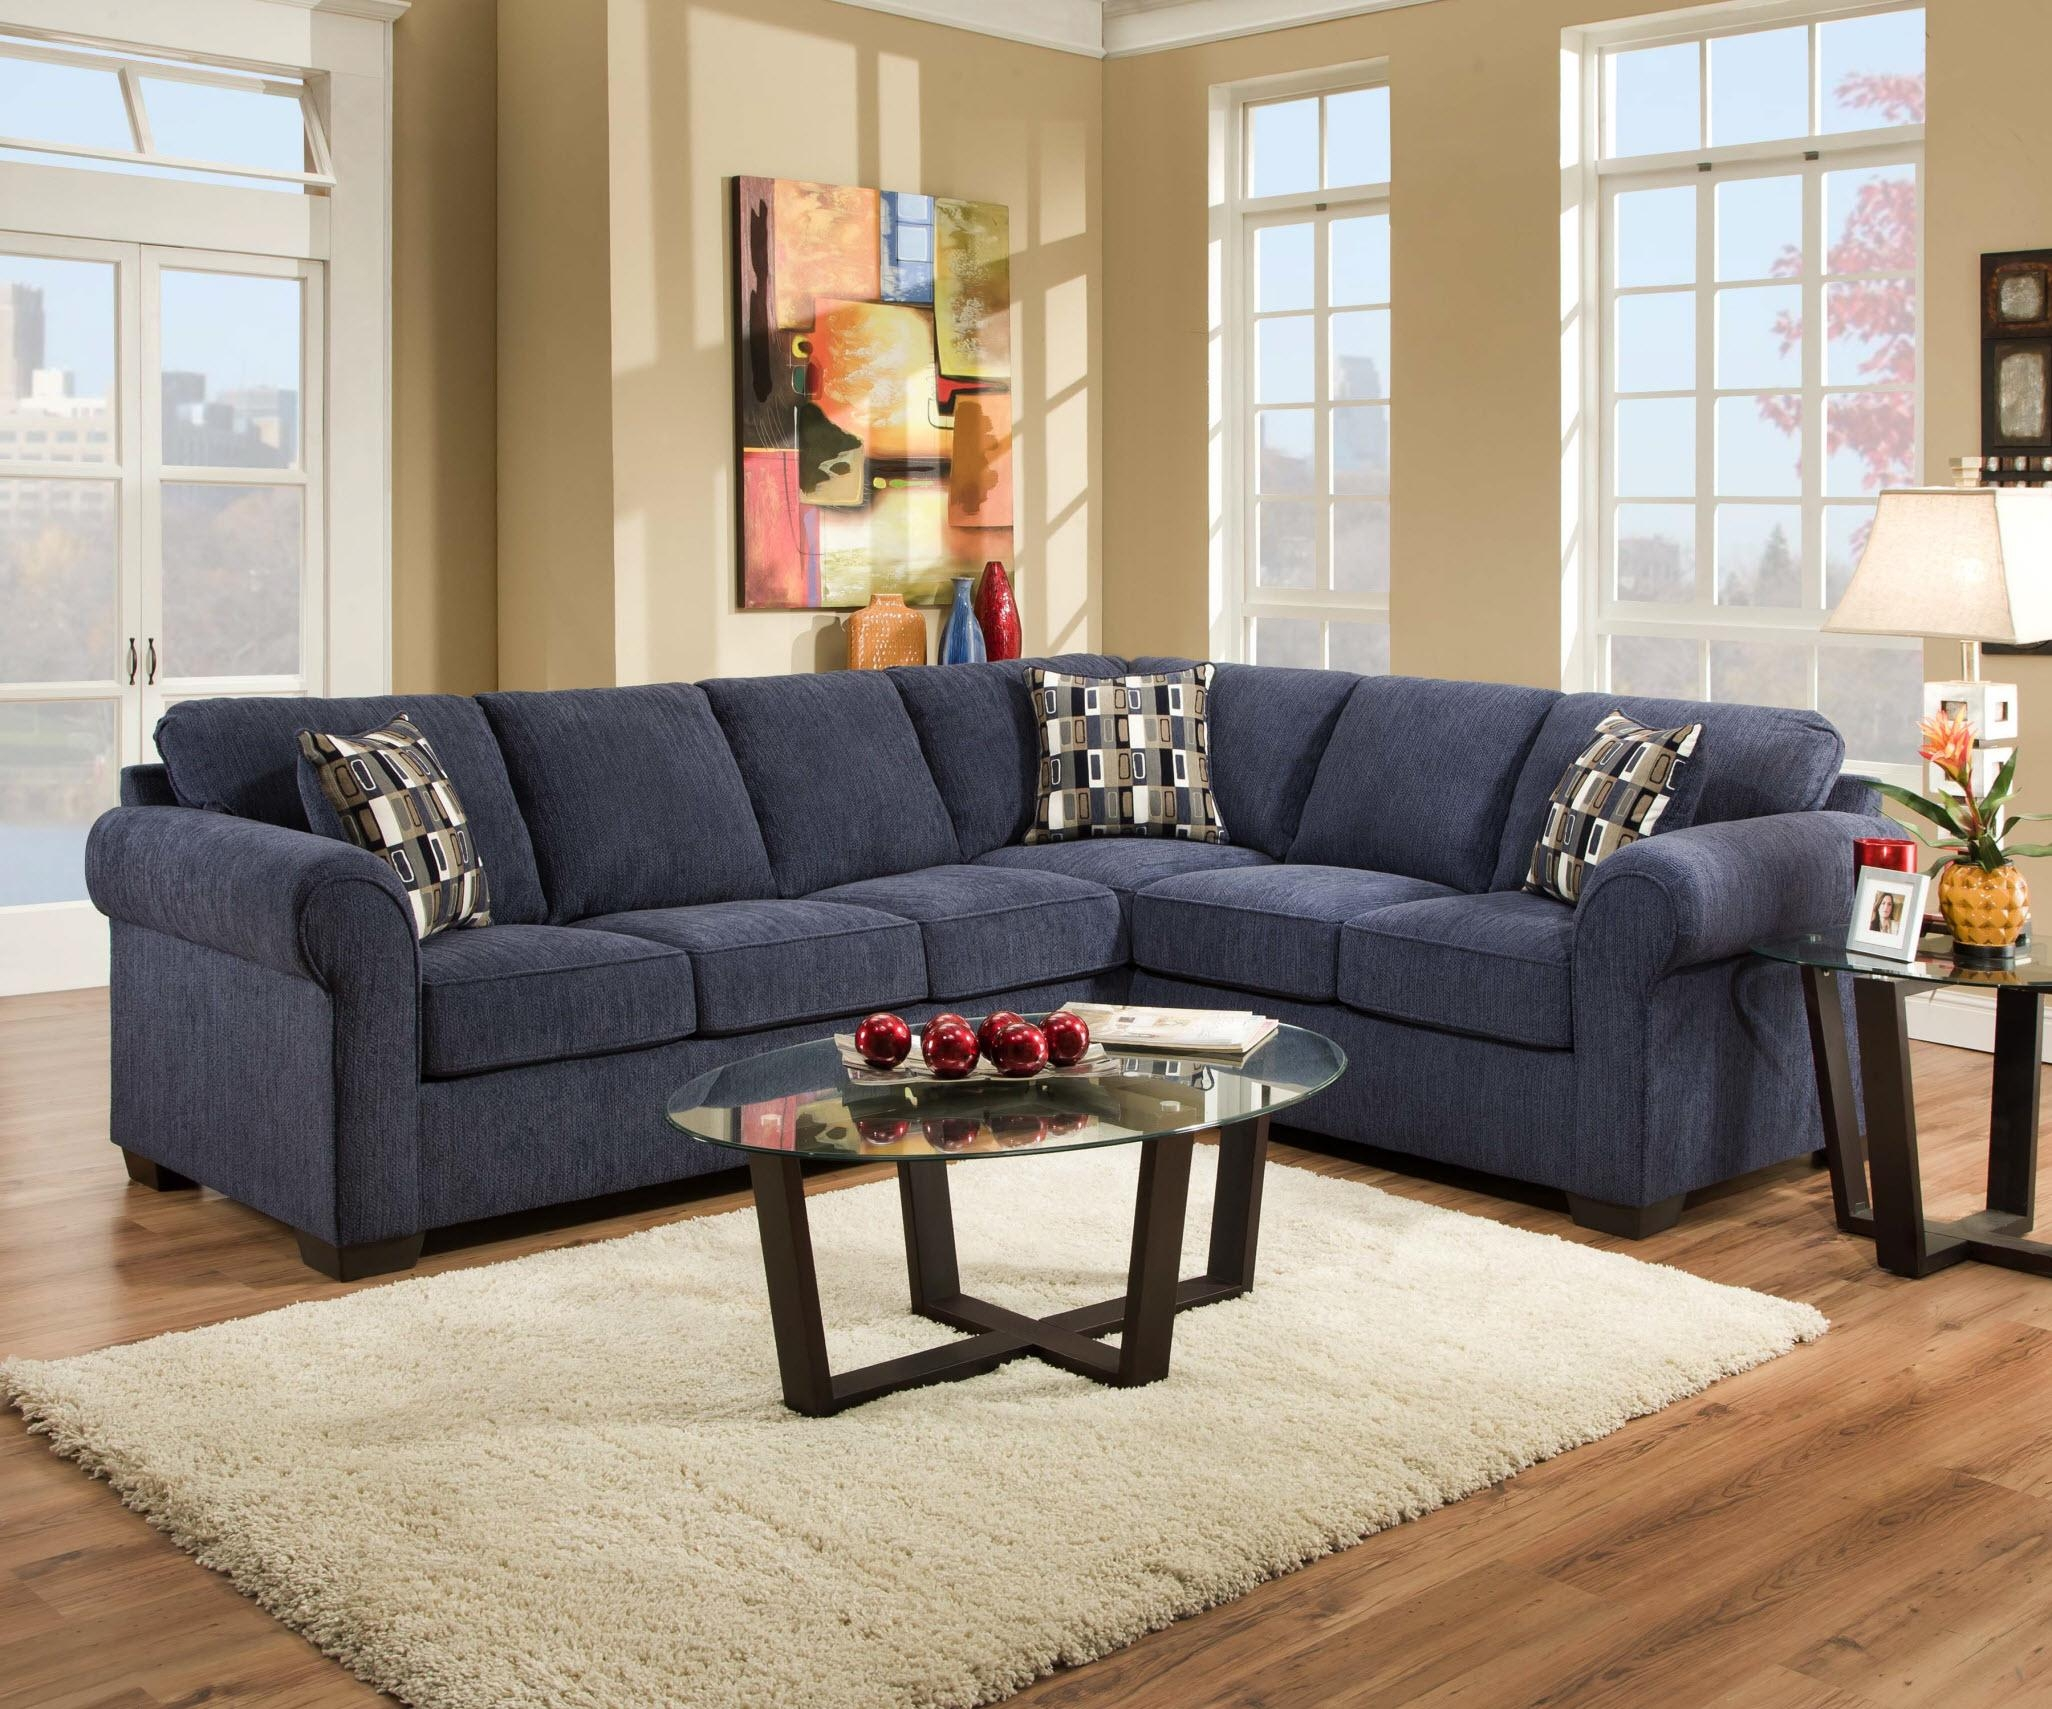 Sofas Center : Navy Blue Sofa Set Leather Wayfair Sectional With Blue Microfiber Sofas (Image 18 of 20)